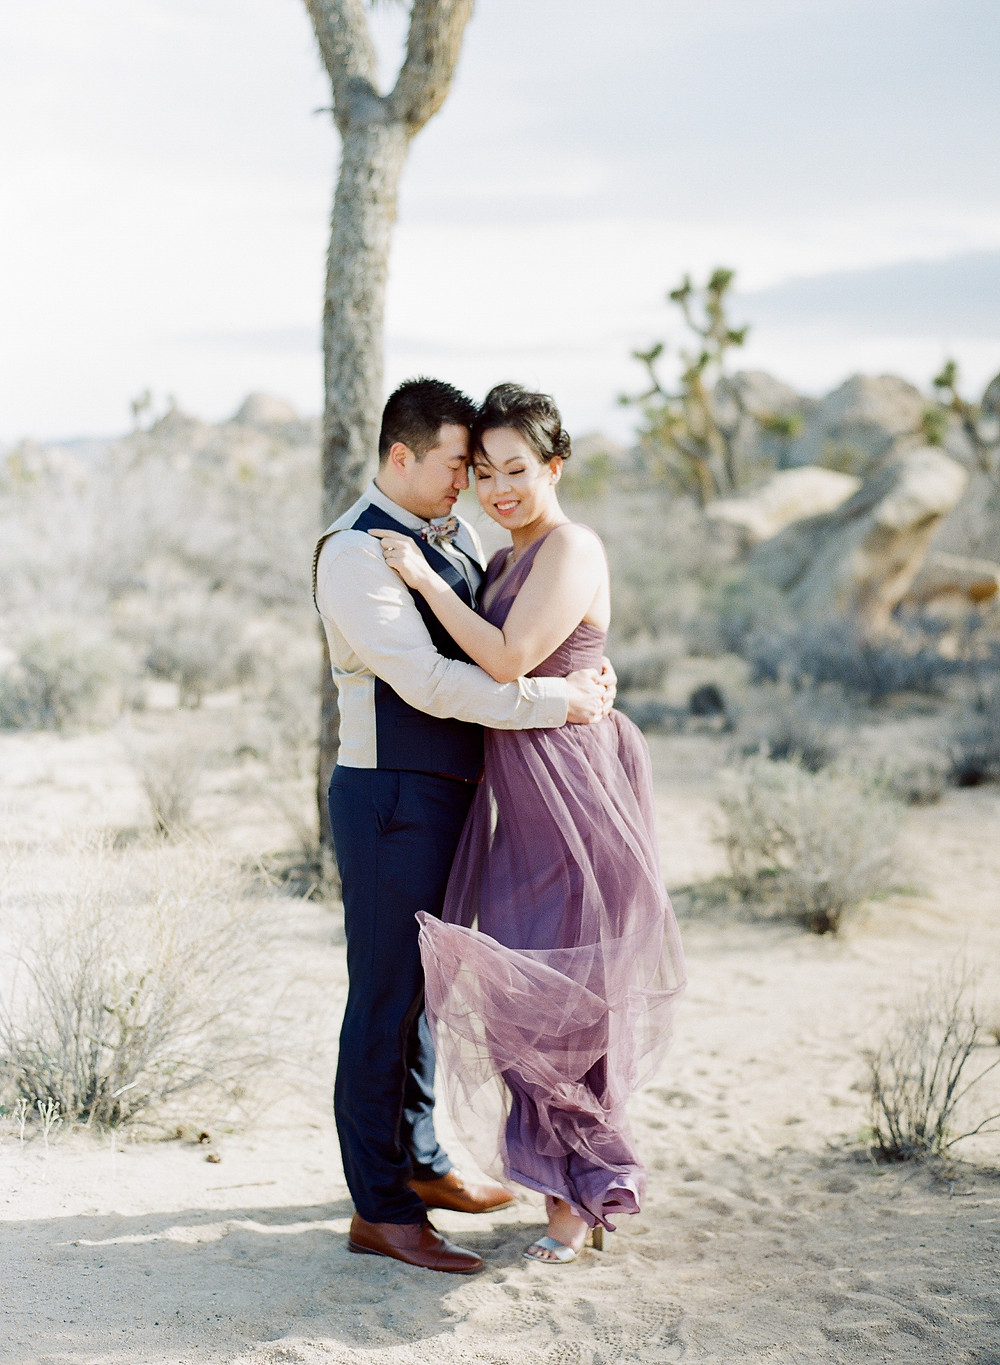 Asian couple engagement photos in Joshua Tree National Park